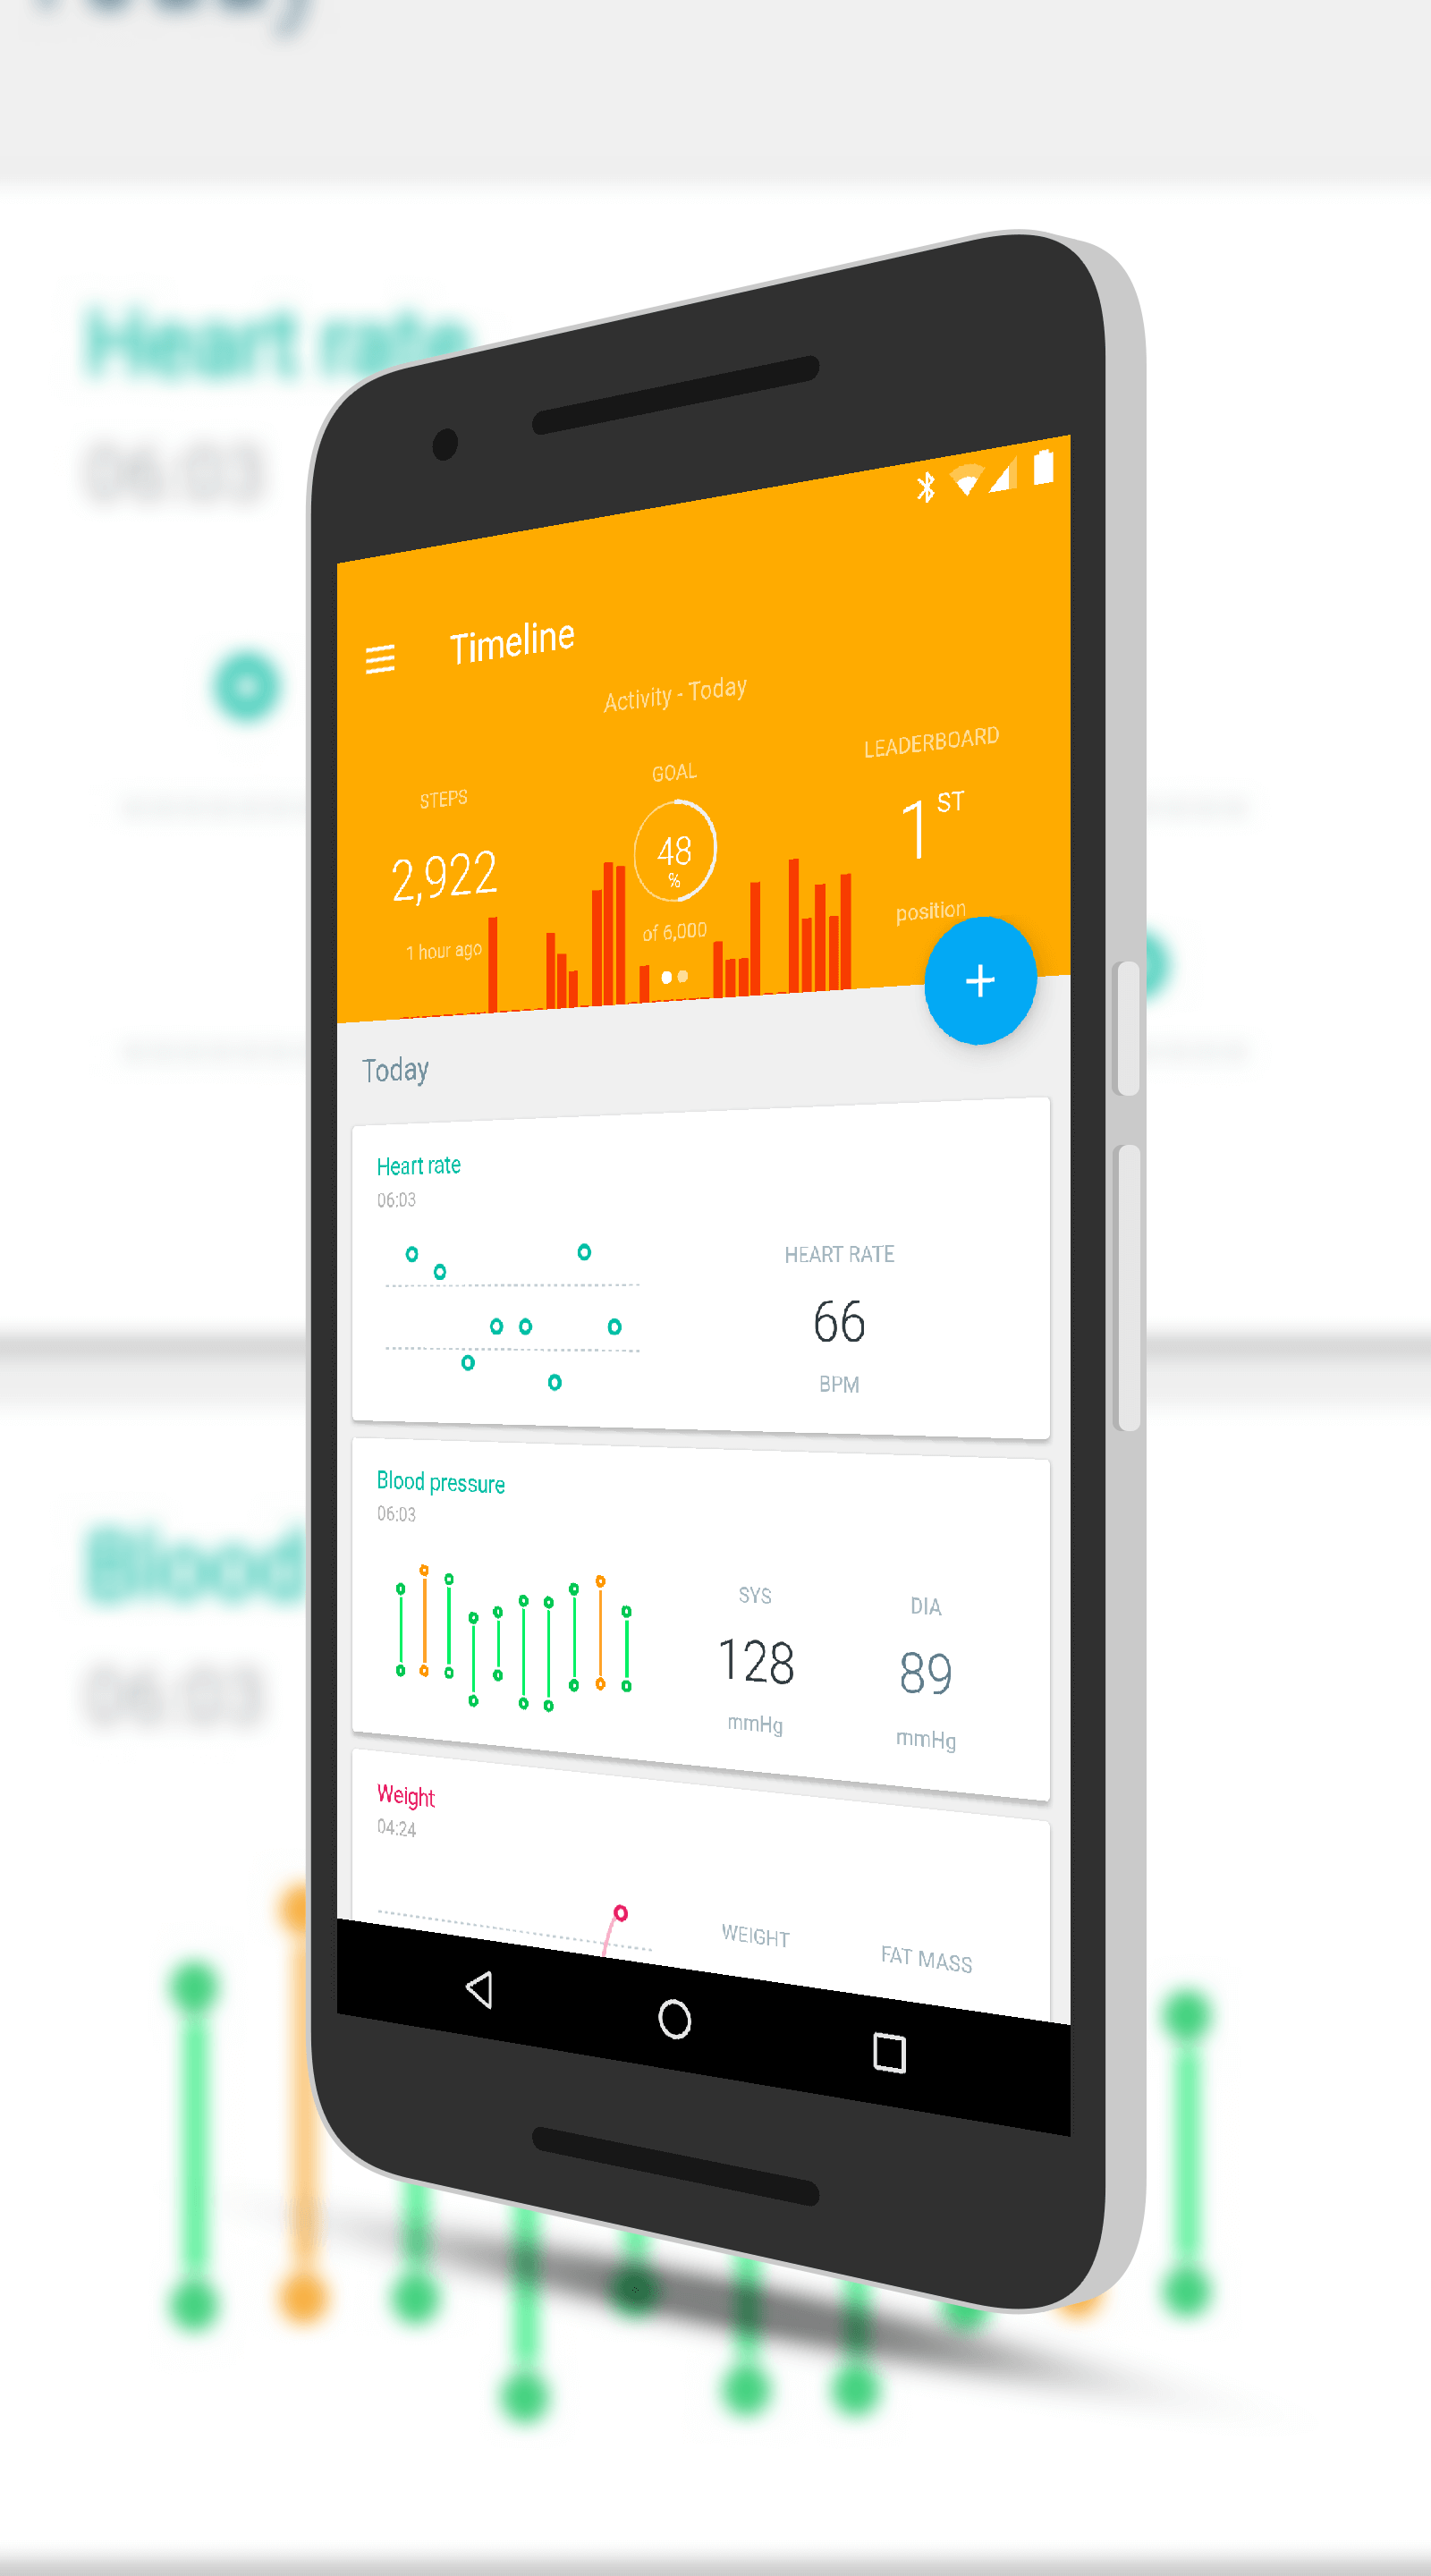 Withings Timeline with Blood Pressure and Pulse